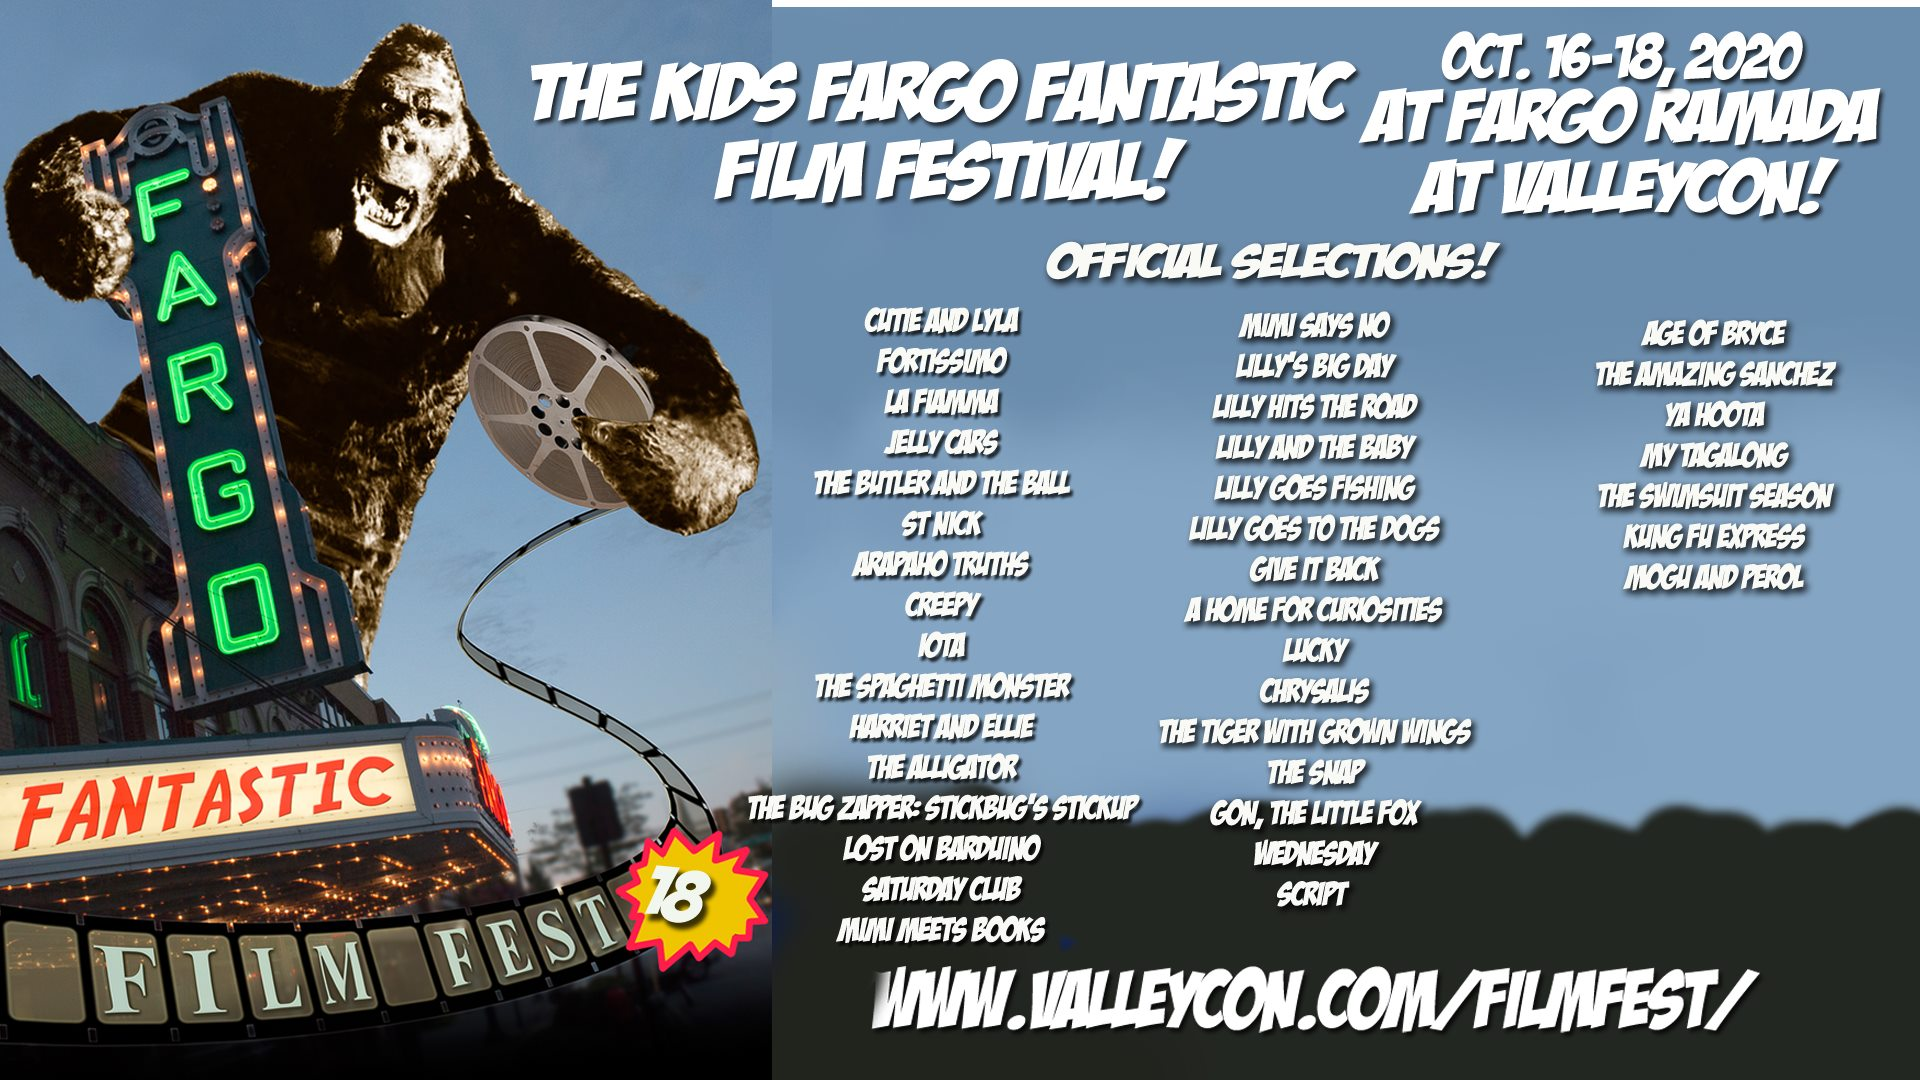 Fargo-Moorhead KIDS Fantastic Film Festival Selects THE BUTLER AND THE BALL